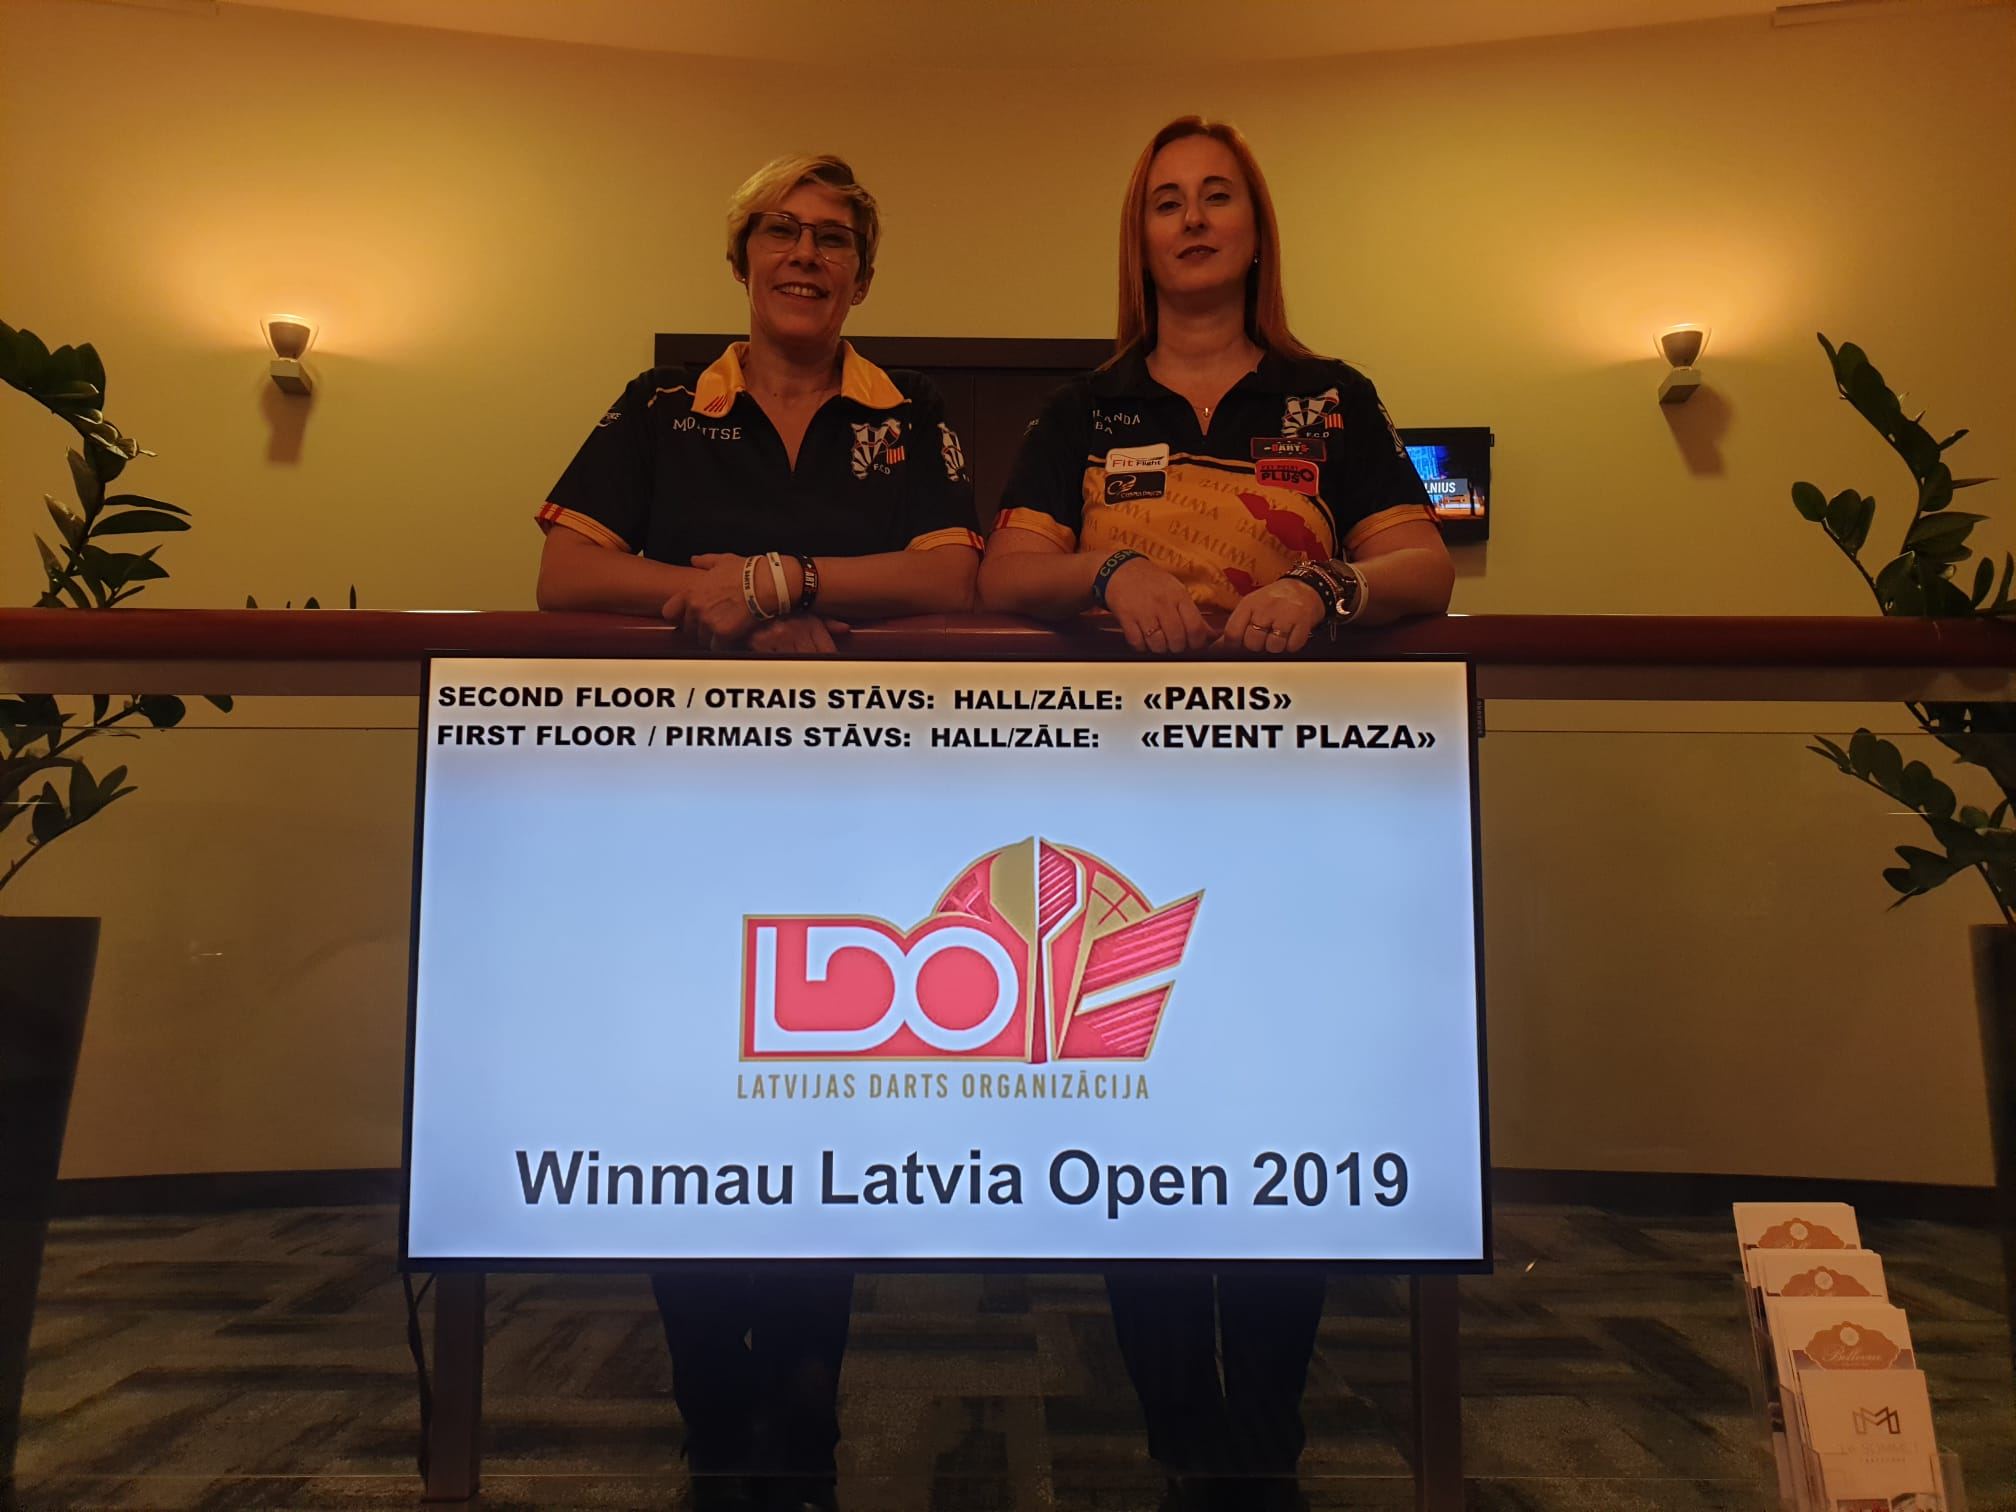 Fotos Winmau Latvia Open 2019